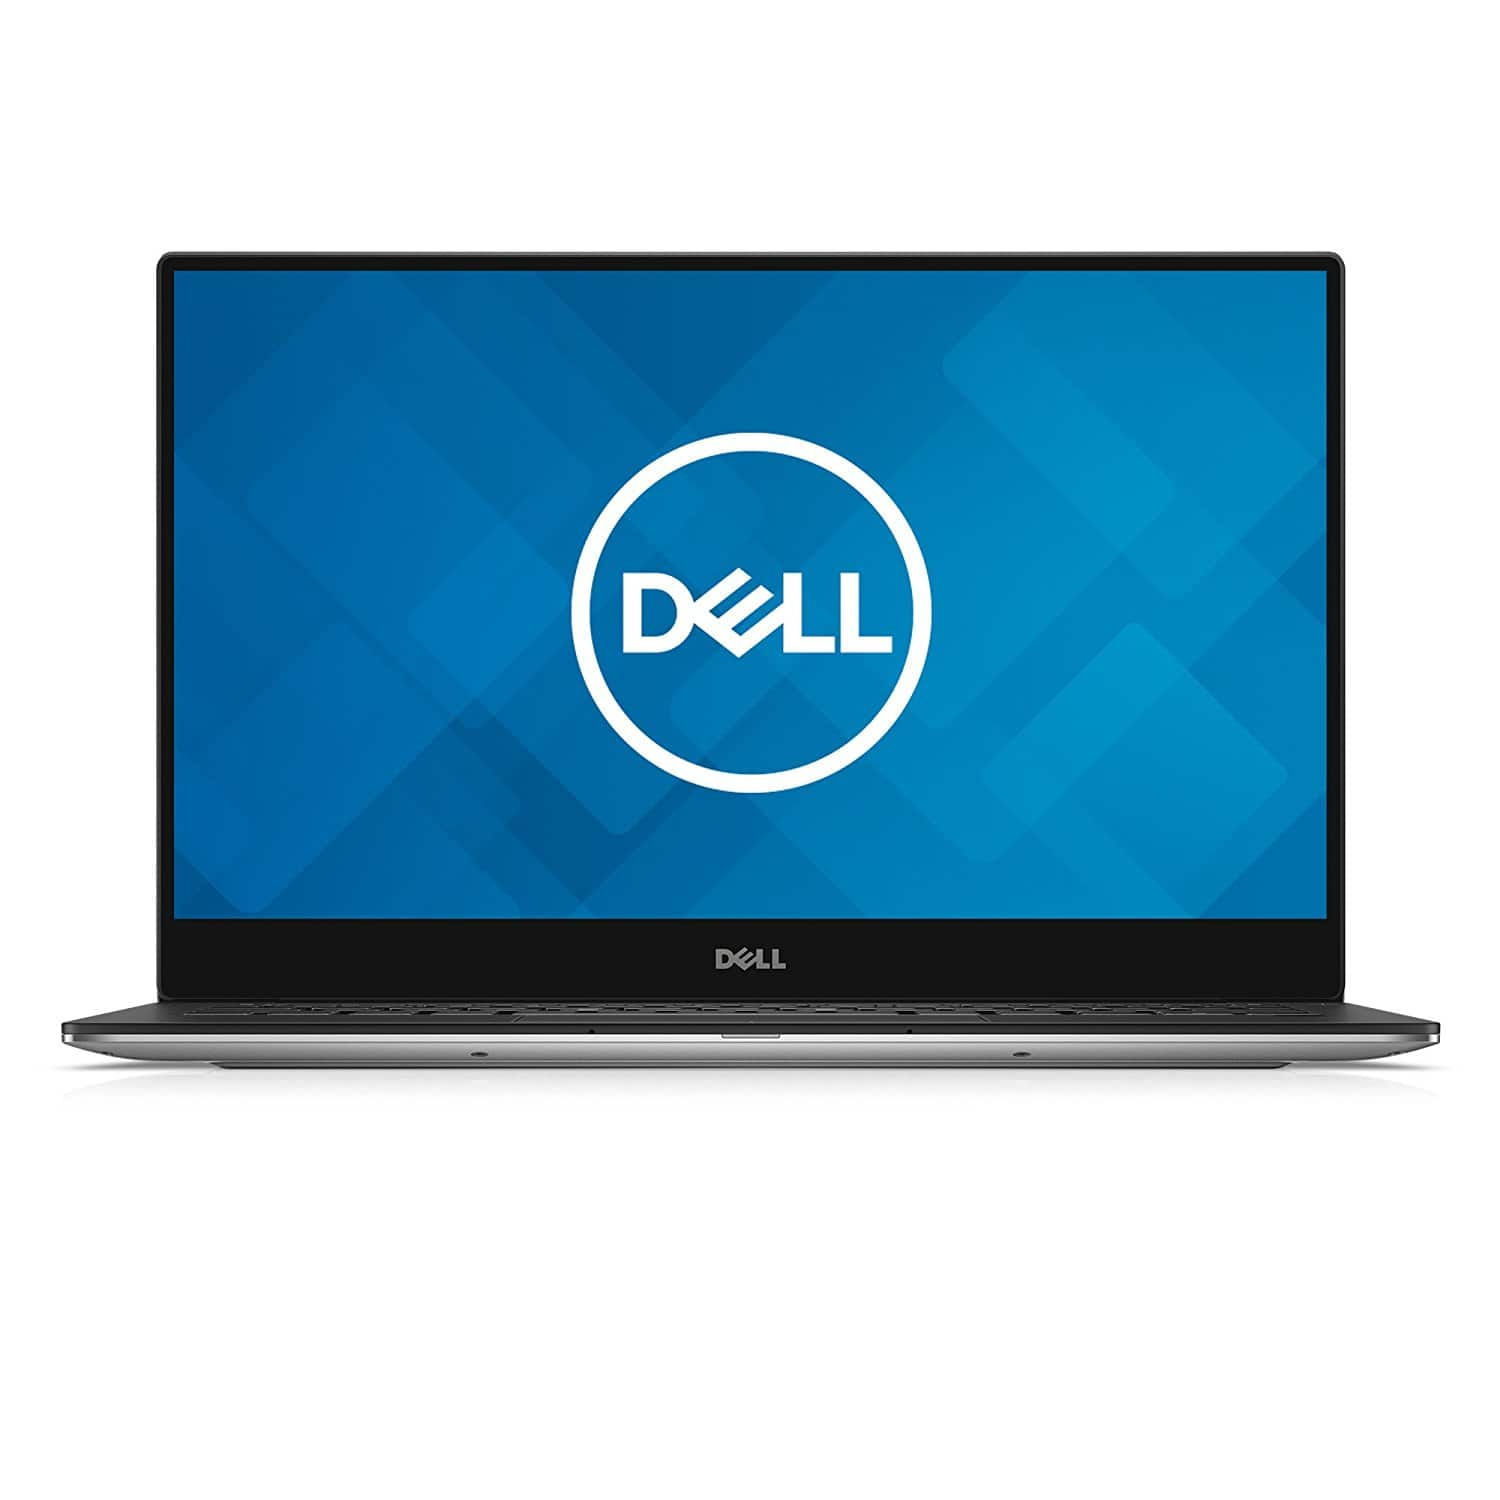 Dell XPS 13 9360 - i7-7560U 8GB RAM 256GB SSD QHD+ $929.87